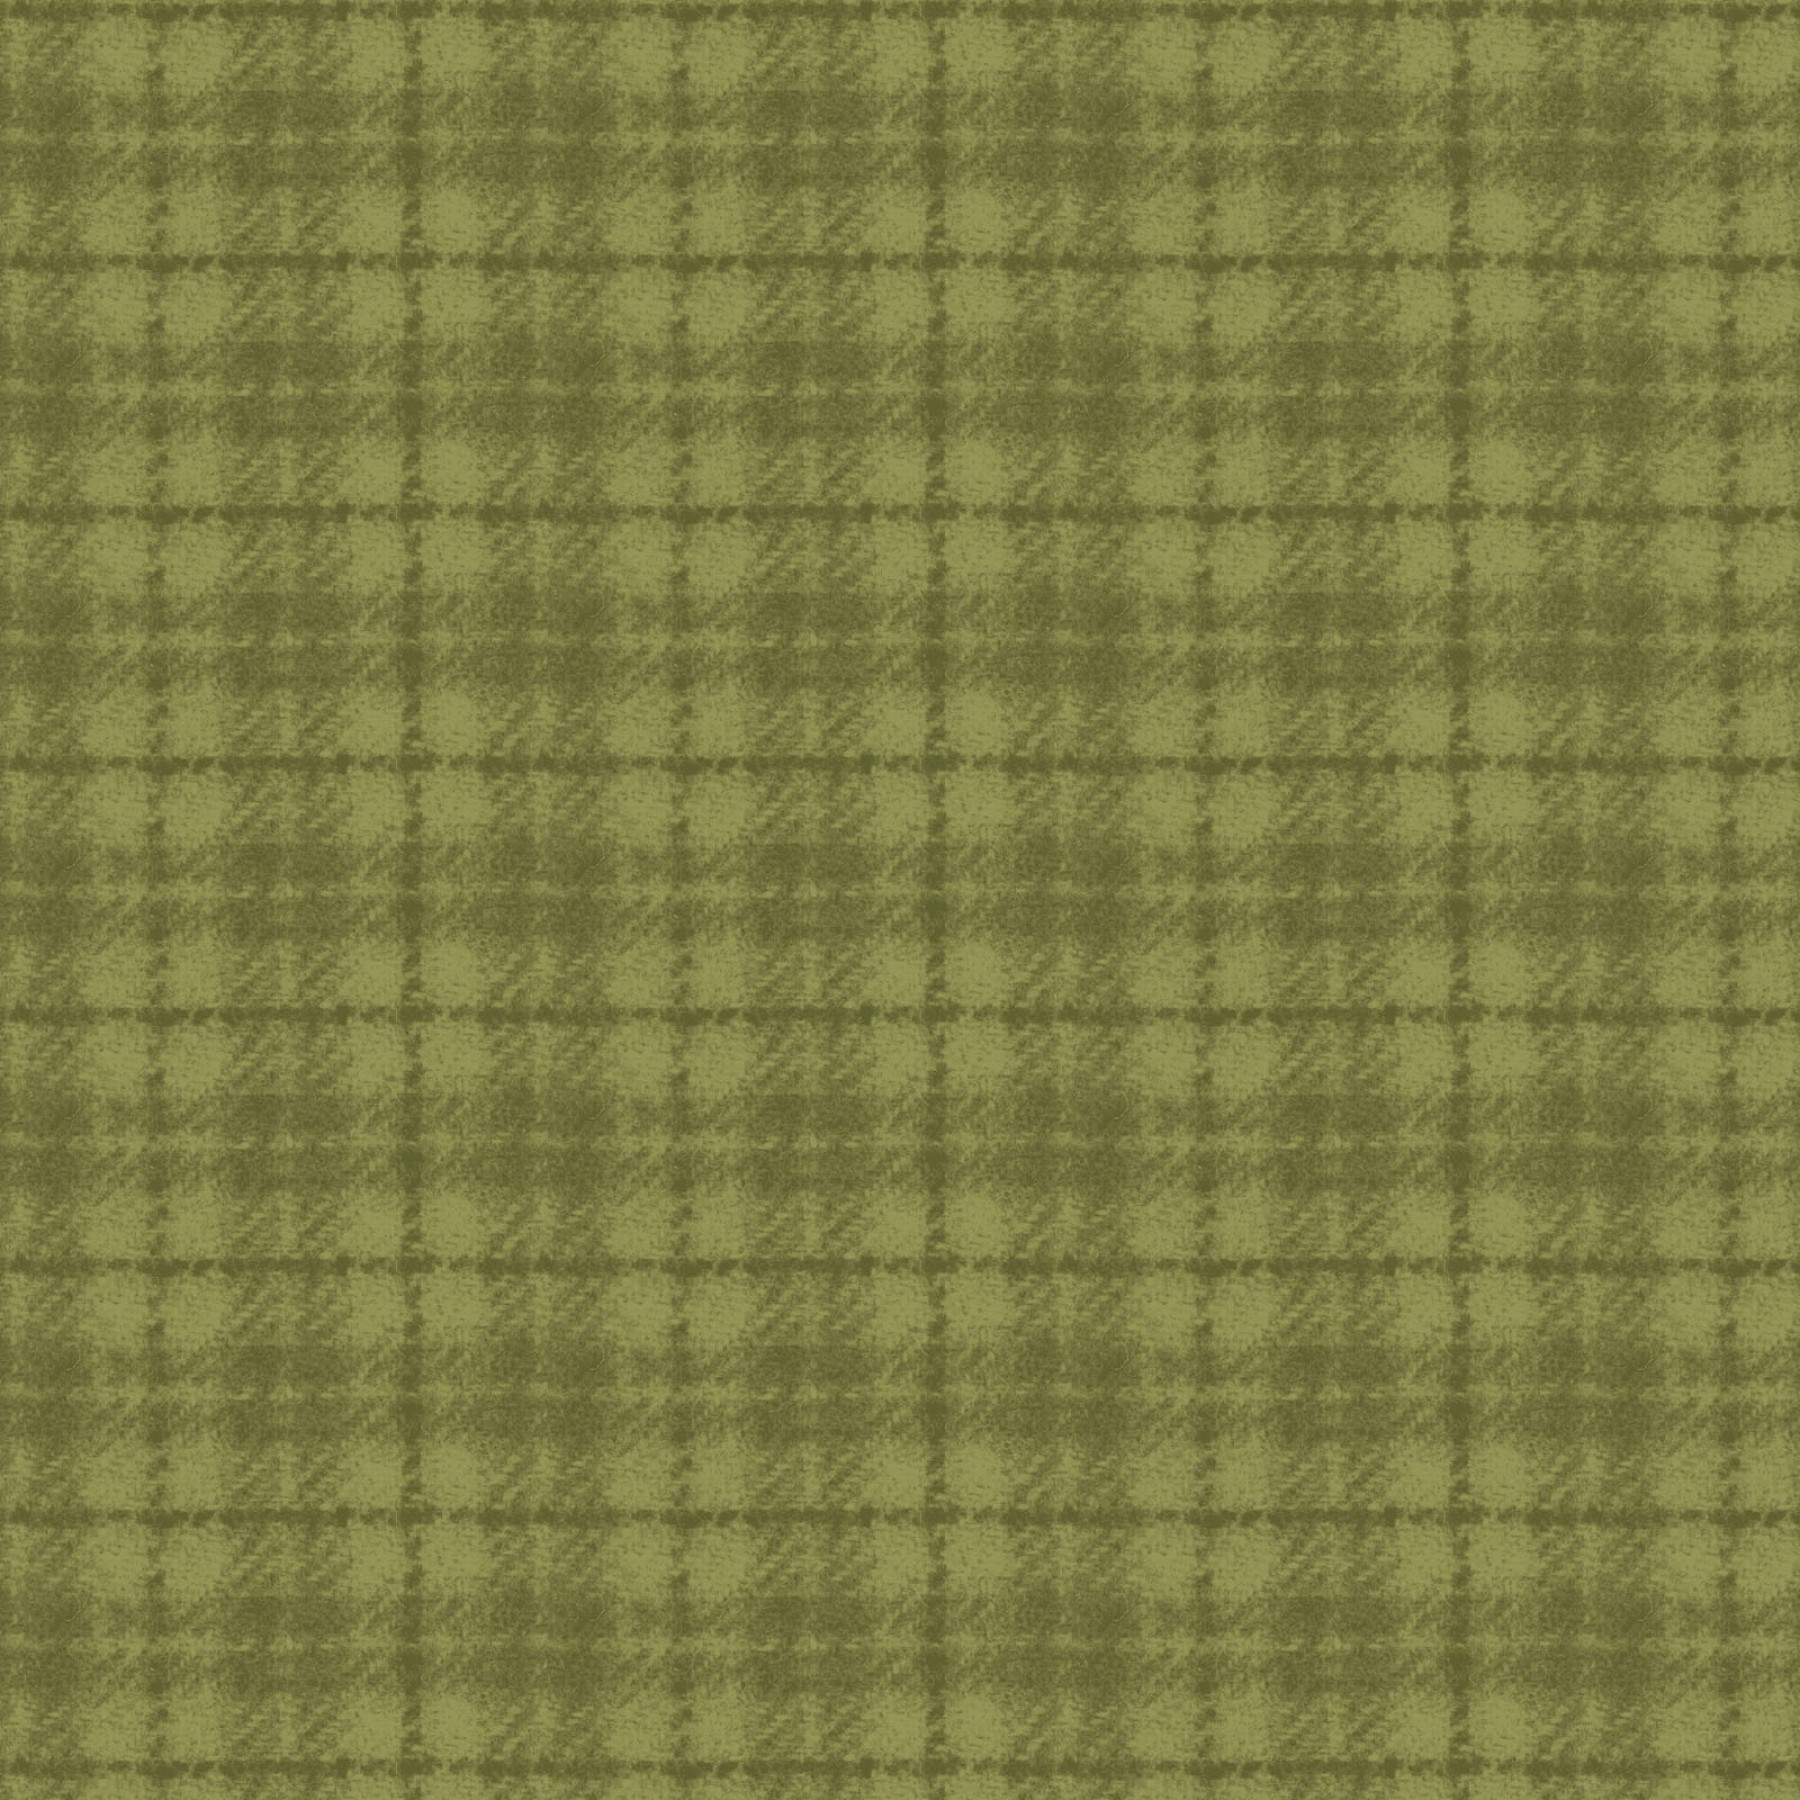 Woolies flannel gray plaid Maywood Studio fabric